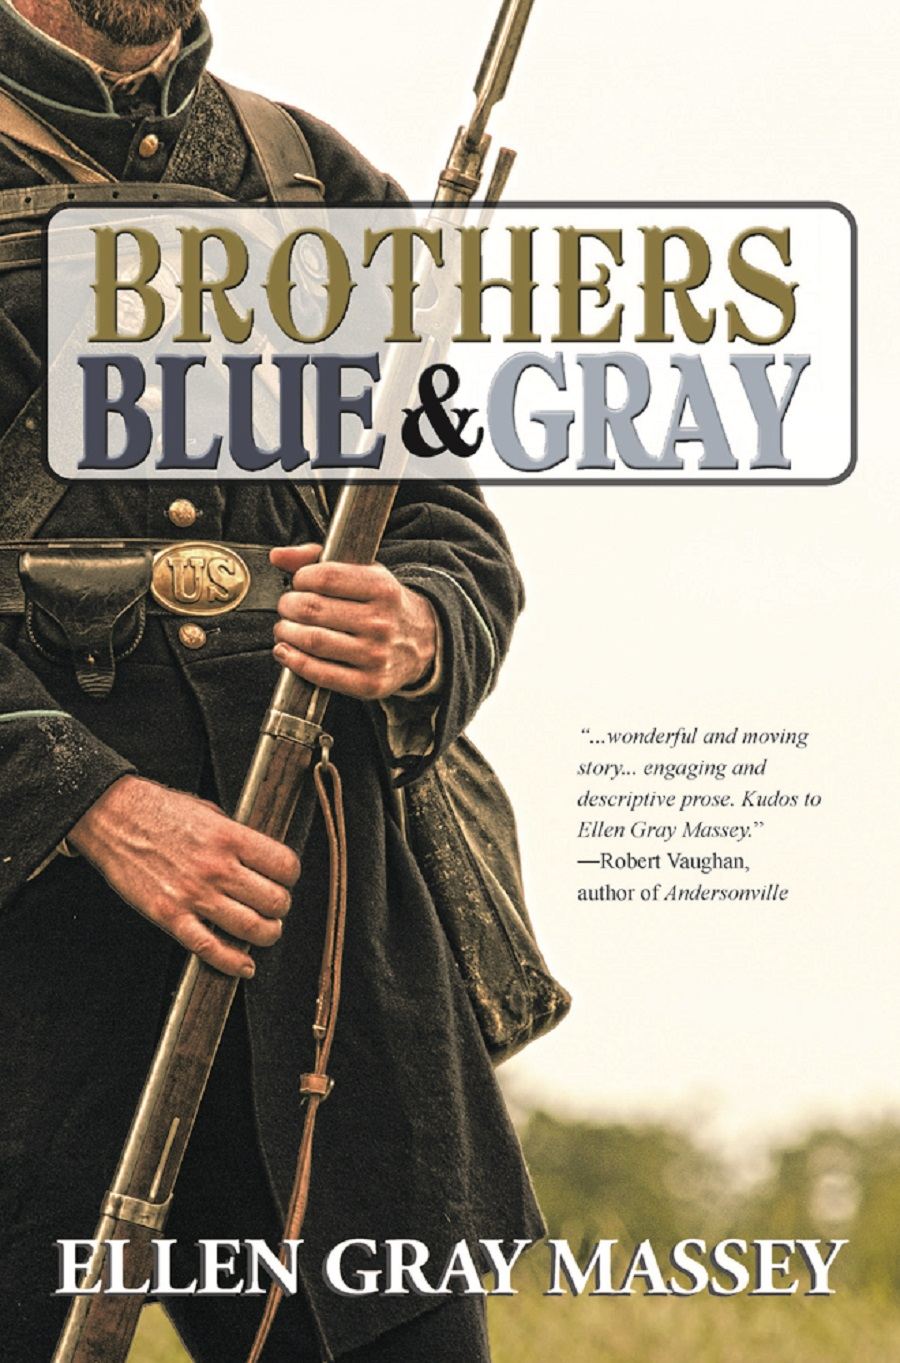 Brothers, Blue & Gray